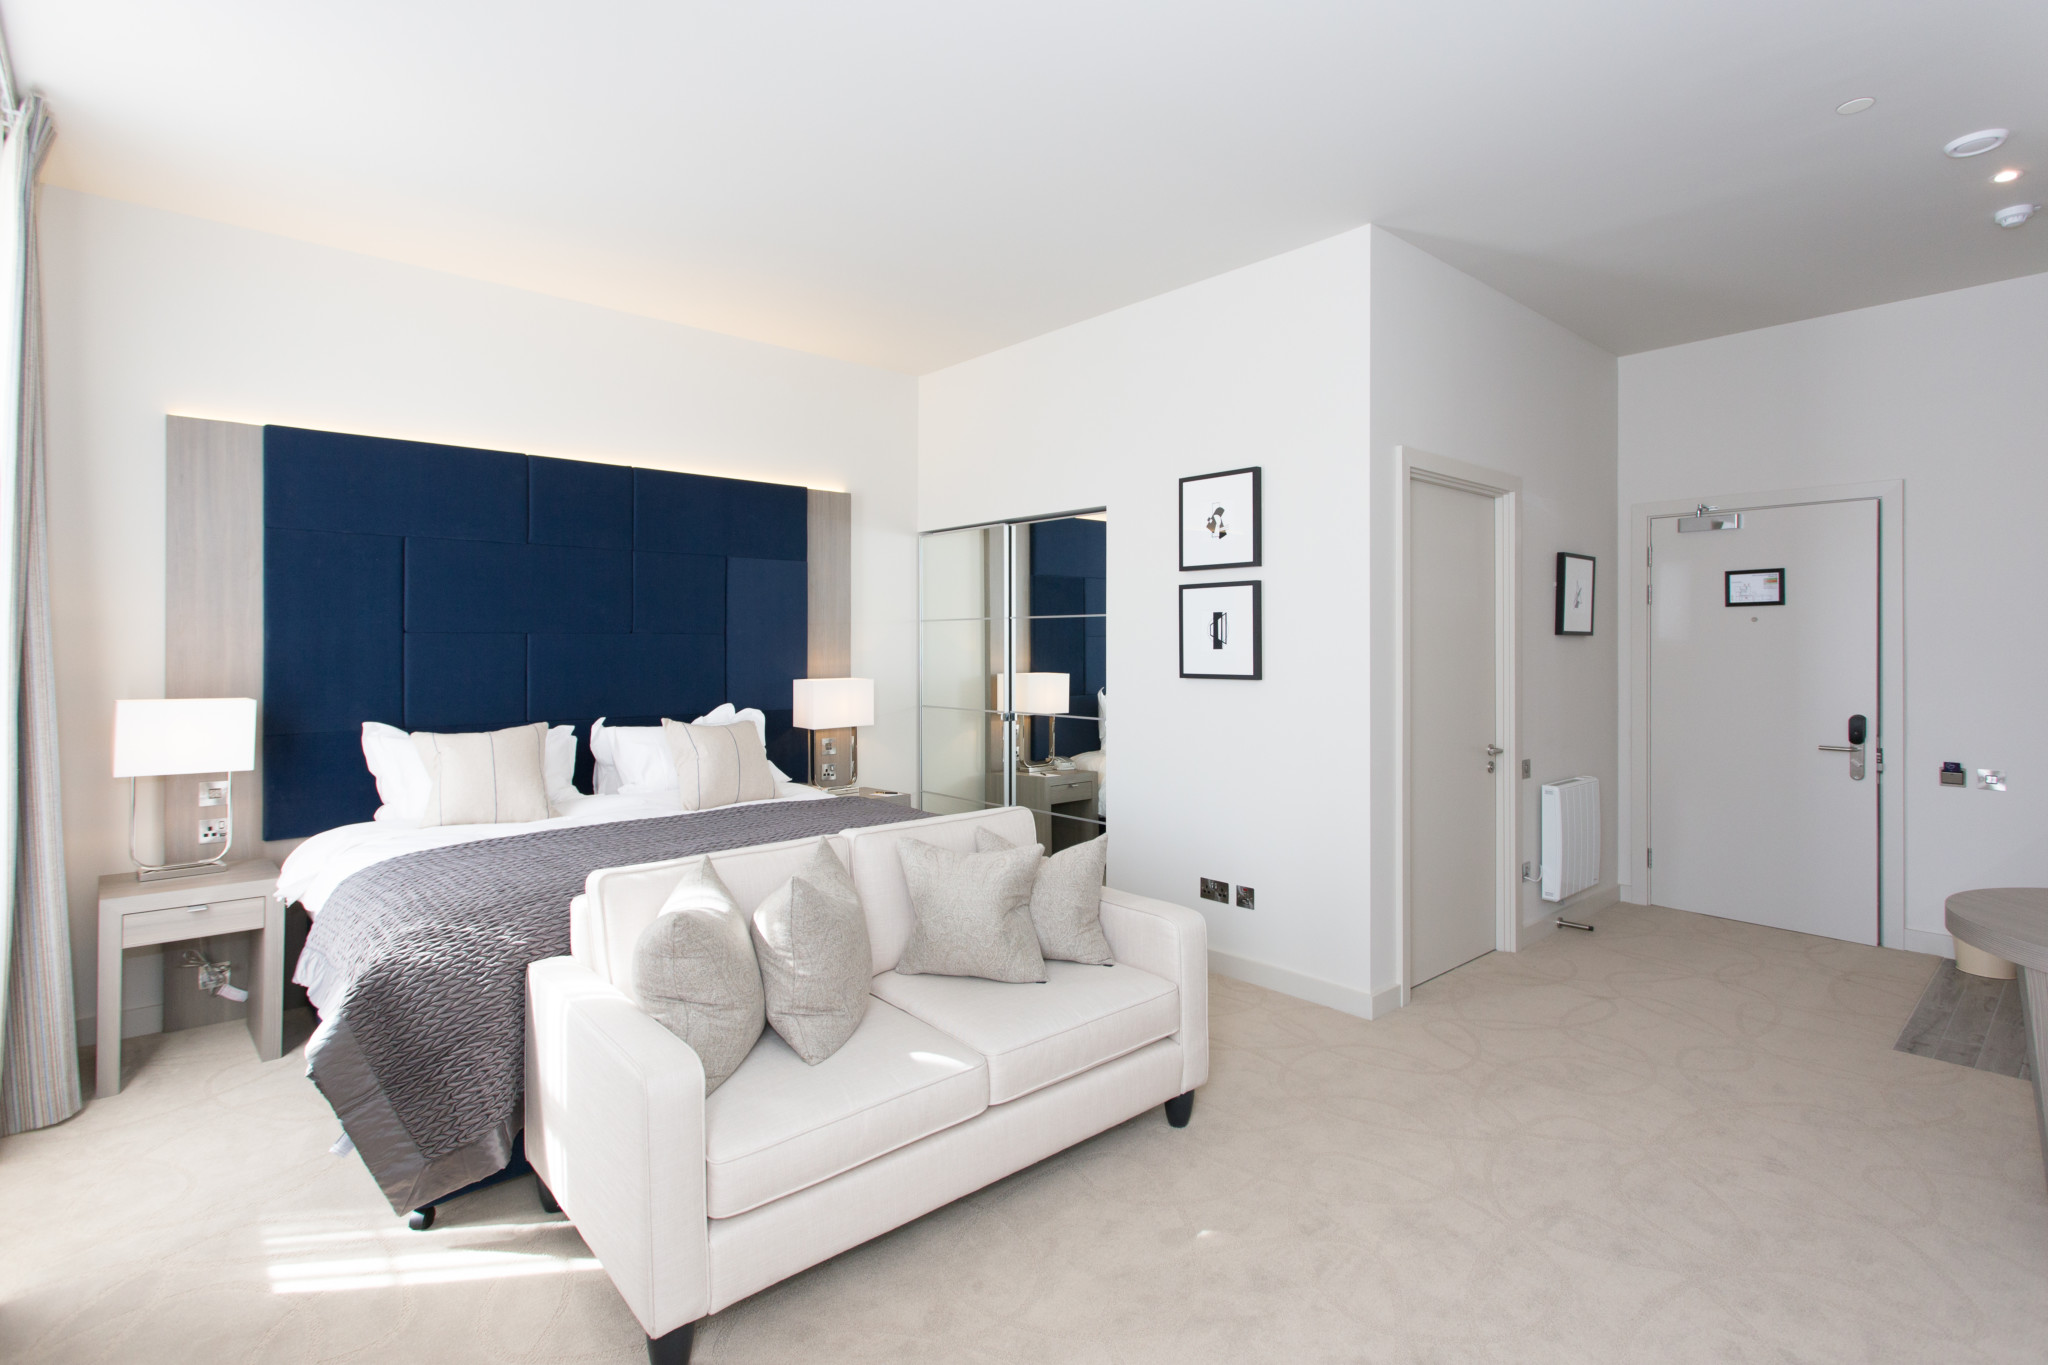 luxury scottish hotel suites reopen following two-year multi